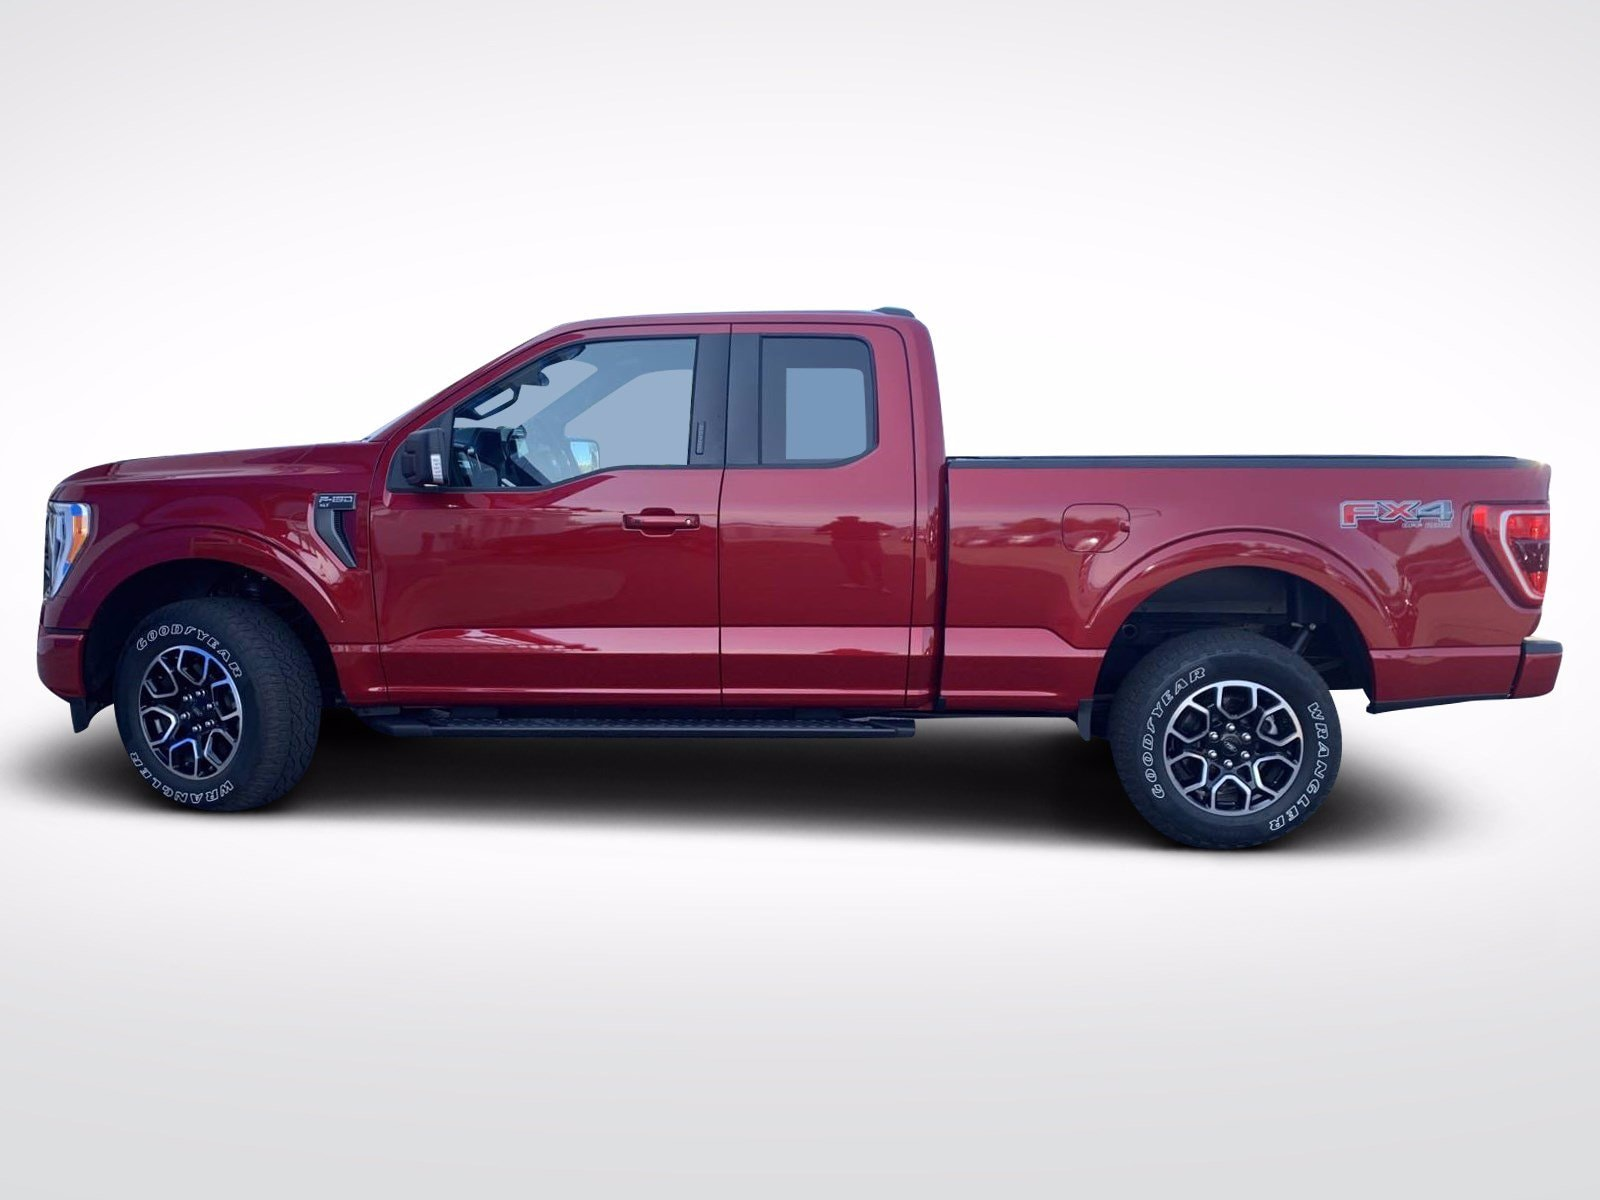 Used 2021 Ford F-150 XLT with VIN 1FTFX1E51MKD65698 for sale in Baxter, Minnesota